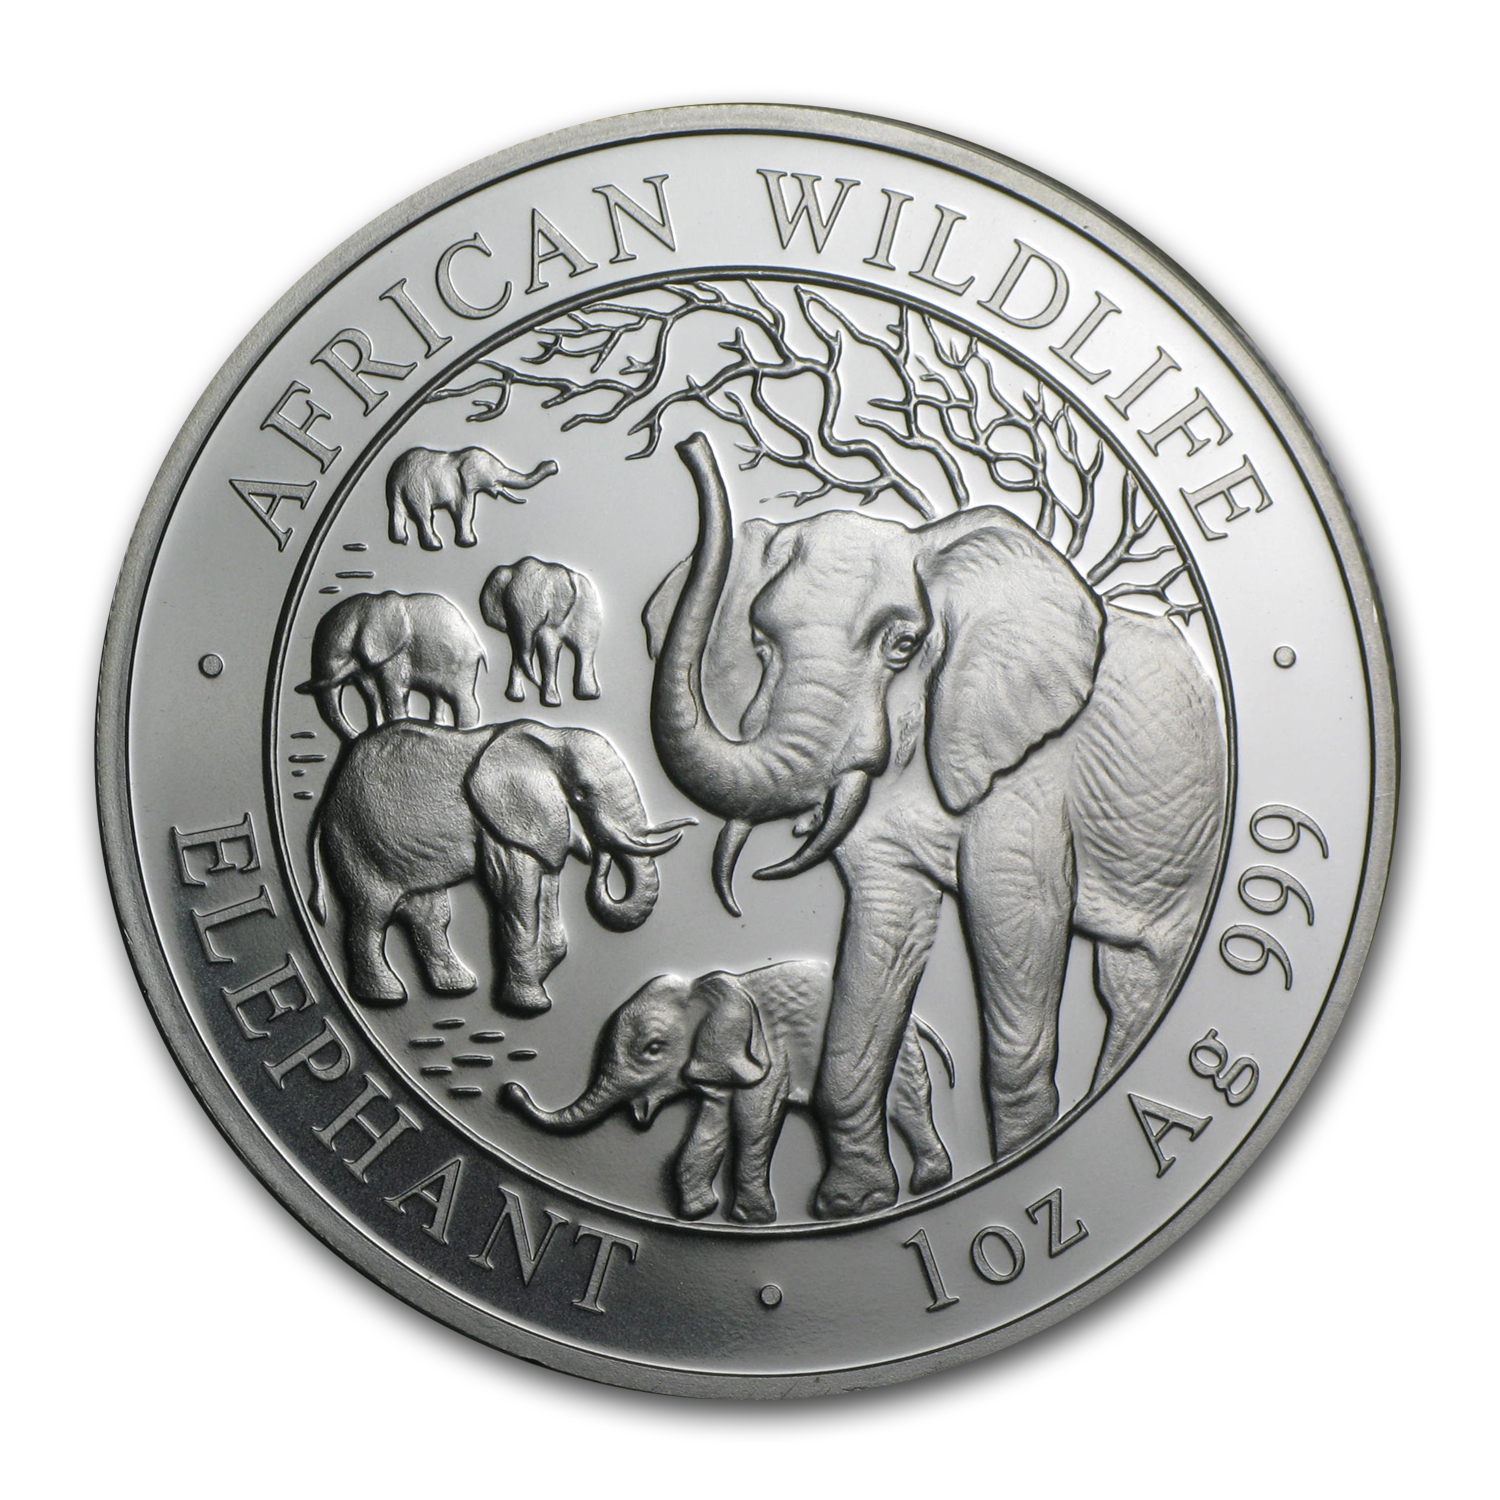 2008 1 oz Silver Somalian Elephant - Brilliant Uncirculated